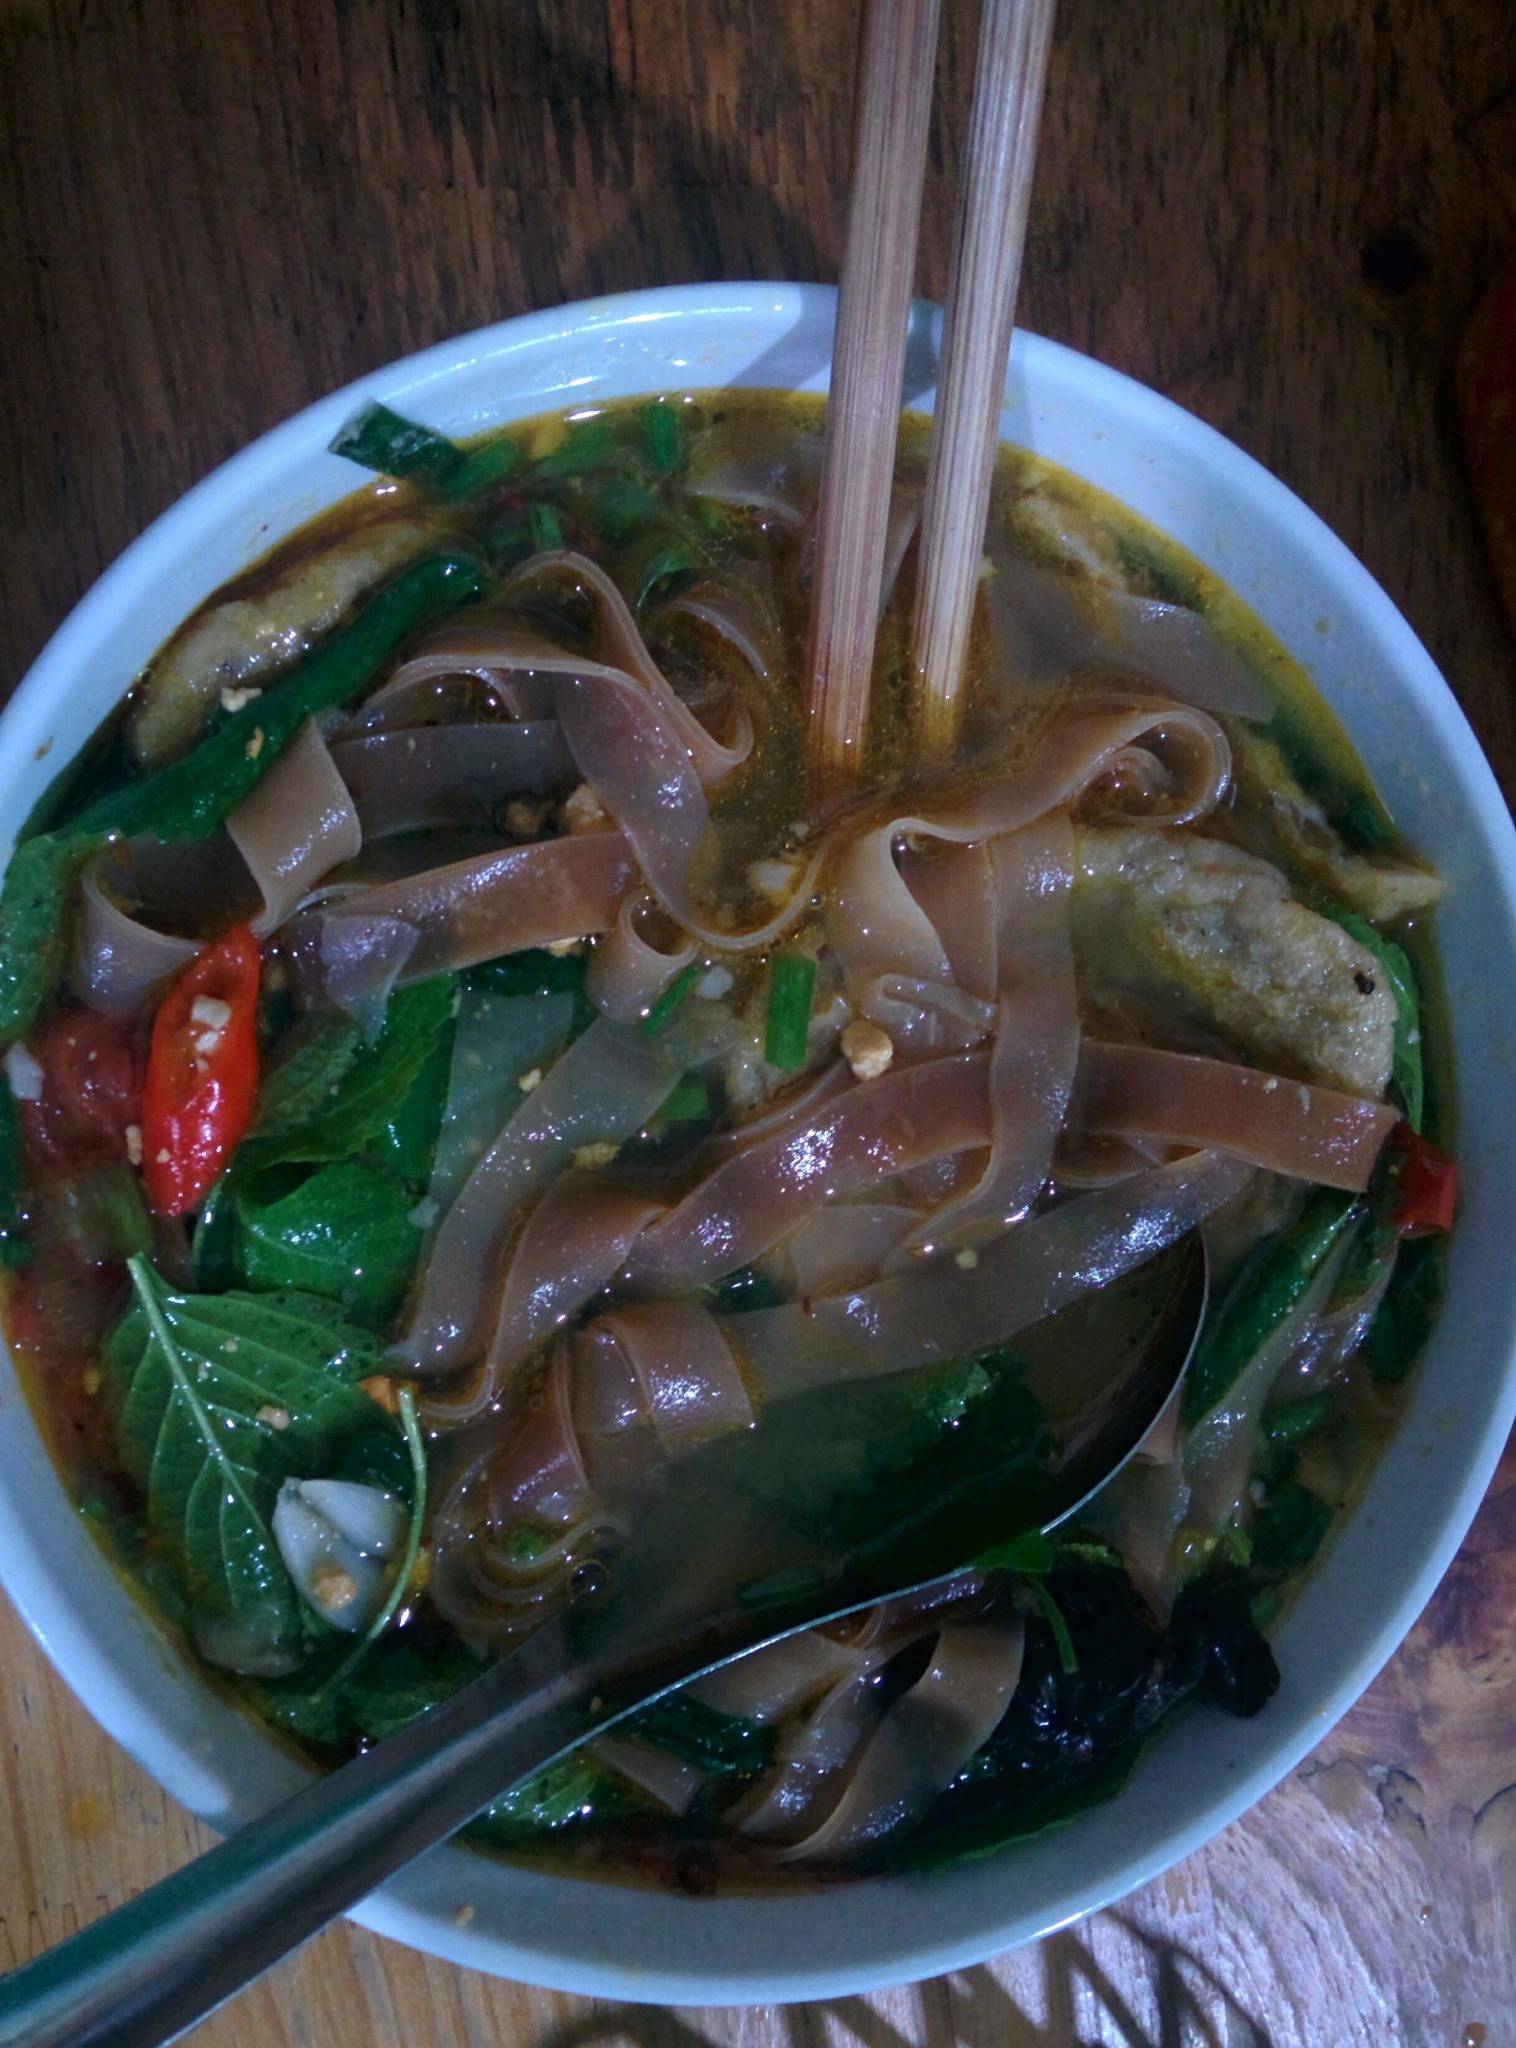 banh da cua - 10 local foods not to miss while in Vietnam